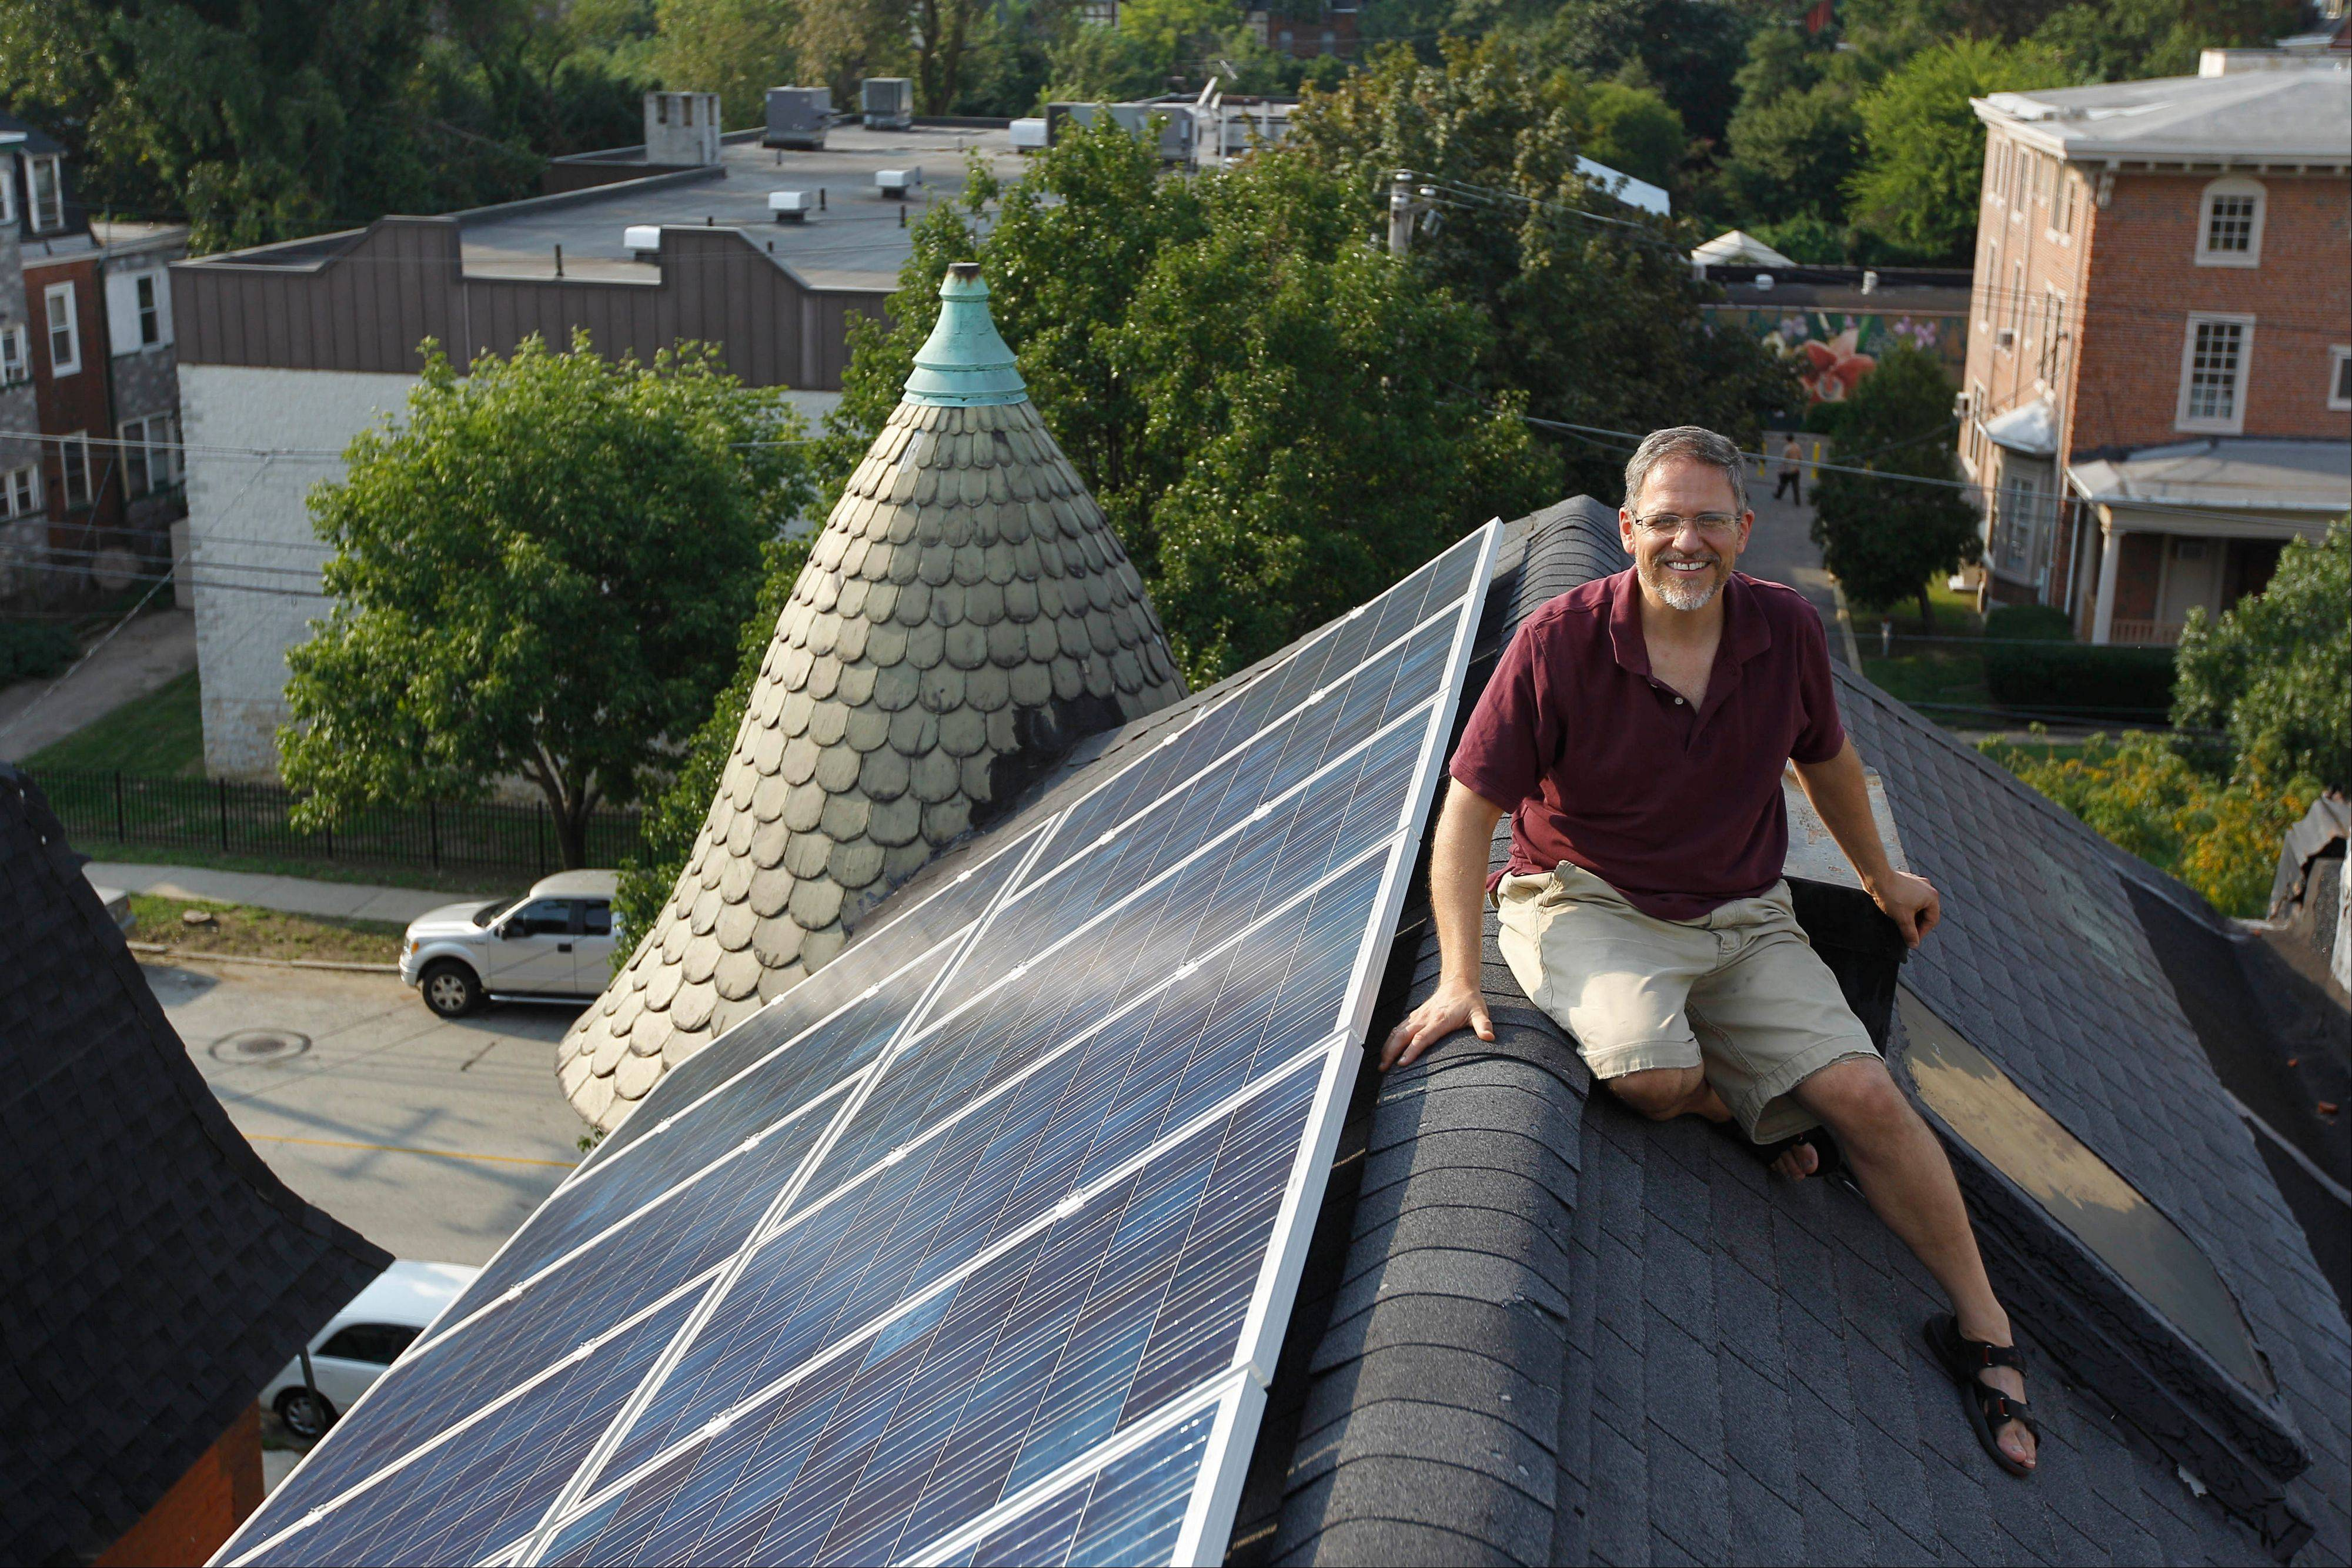 Tim Johnson poses for a portrait with solar panels on his roof in Philadelphia. Since March, he has generated 50 percent to 75 percent of his electricity with a set of solar panels on his roof, saving 20 percent on his electricity bills.